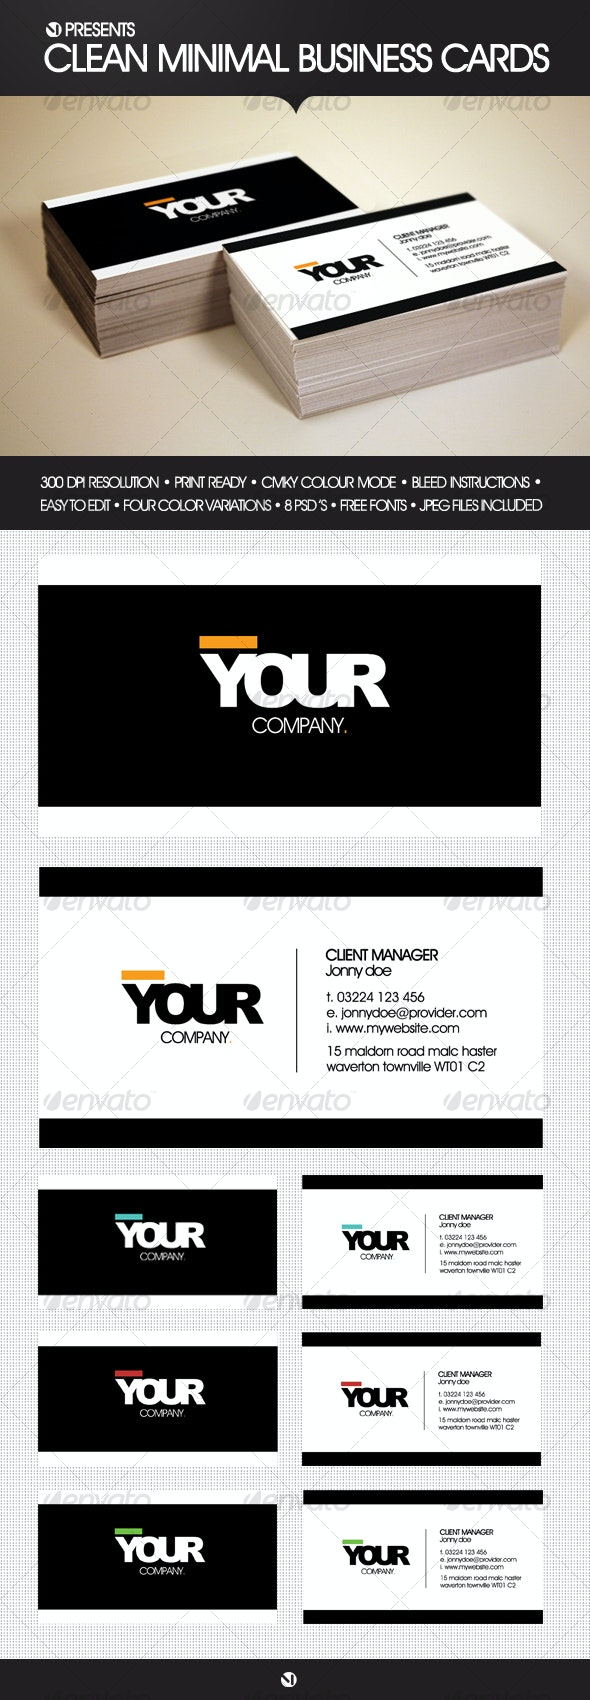 Clean Minimal Business Cards (4 Color Variations) - Corporate Business Cards